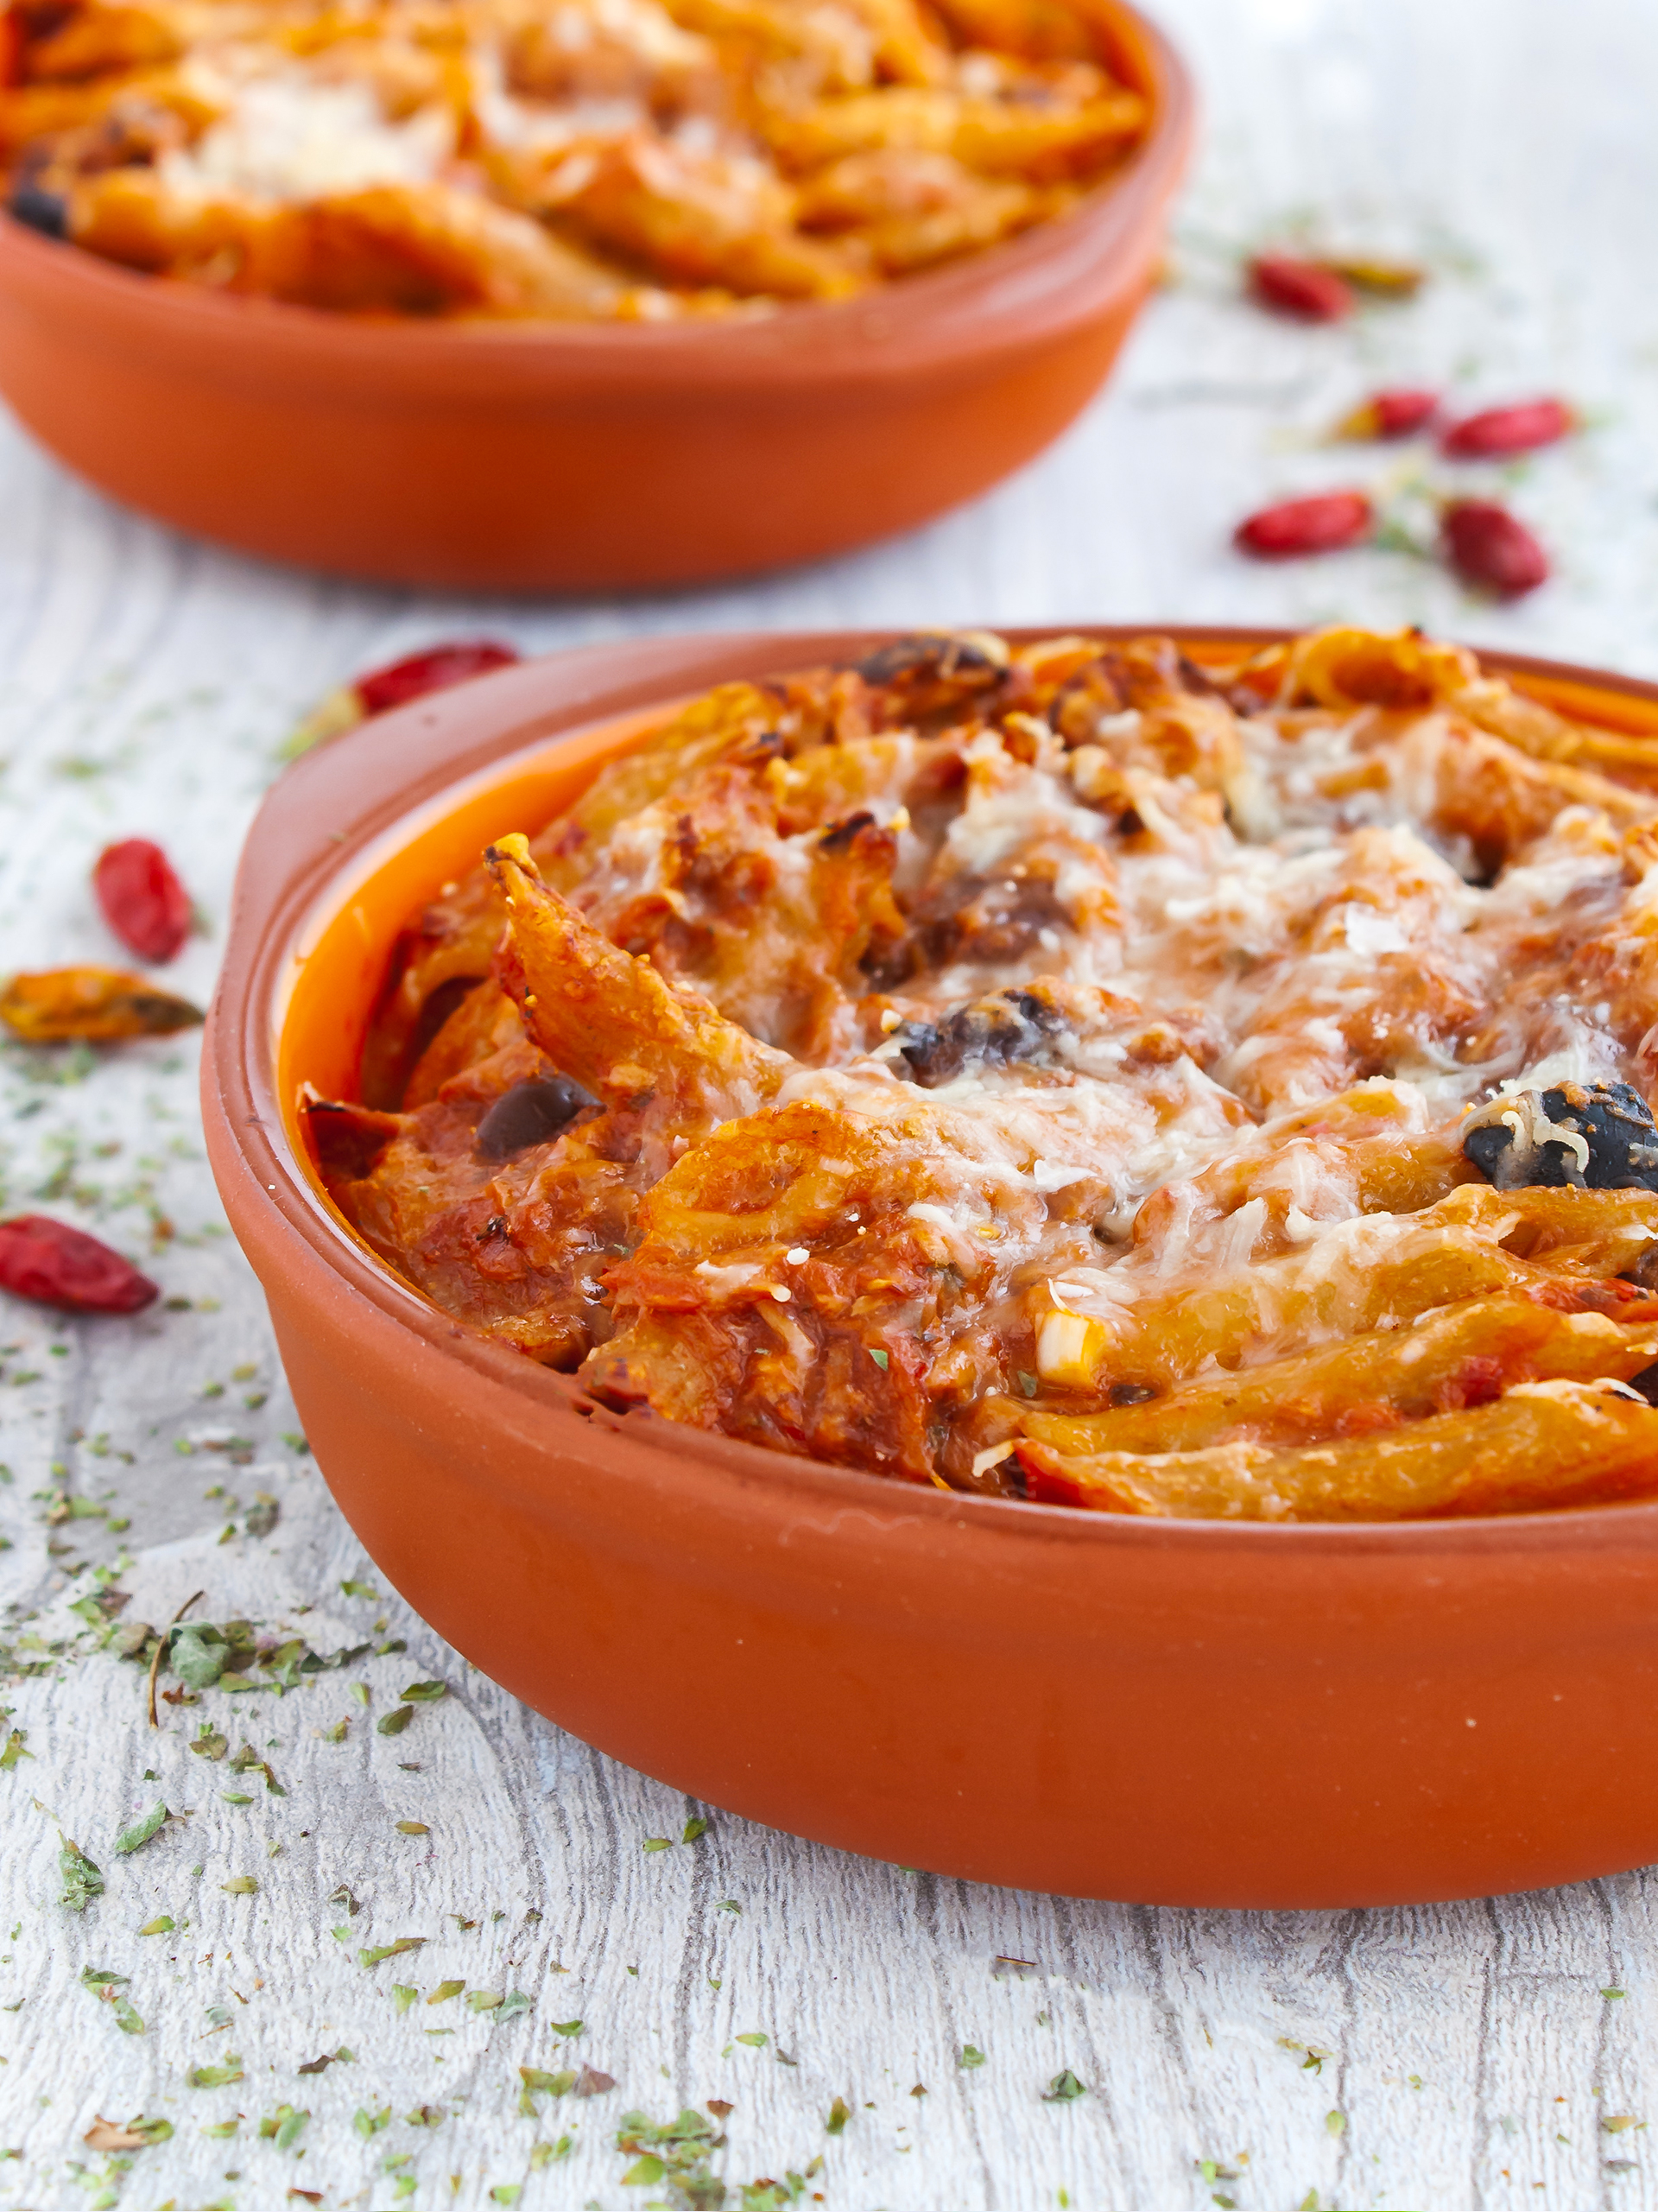 Spicy Tuna and Tomato Pasta Bake with Black Olives  Thumbnail